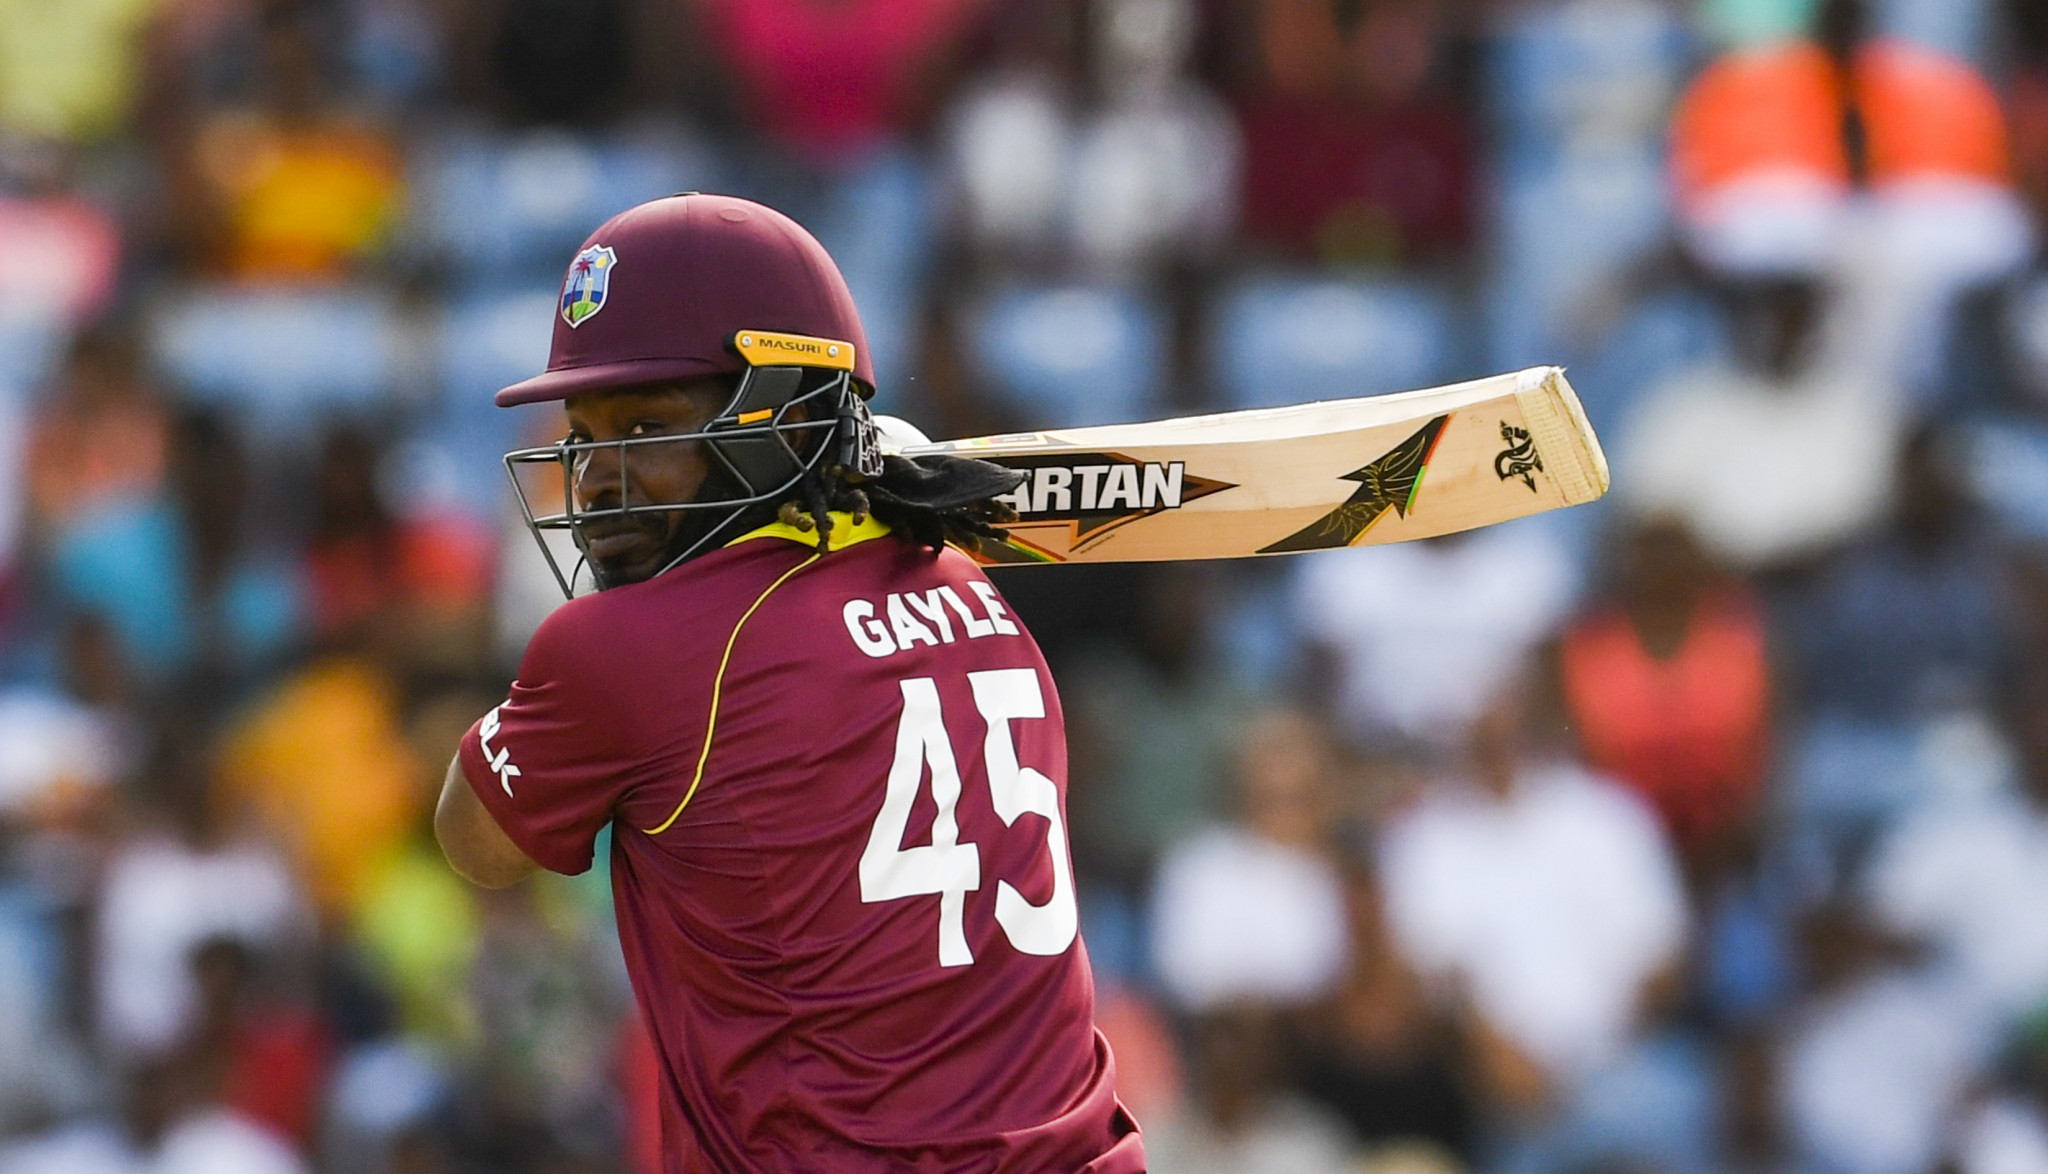 The Everest Premier League, which was due to feature West Indies player Chris Gayle, has also been postponed due to coronavirus ©Getty Images